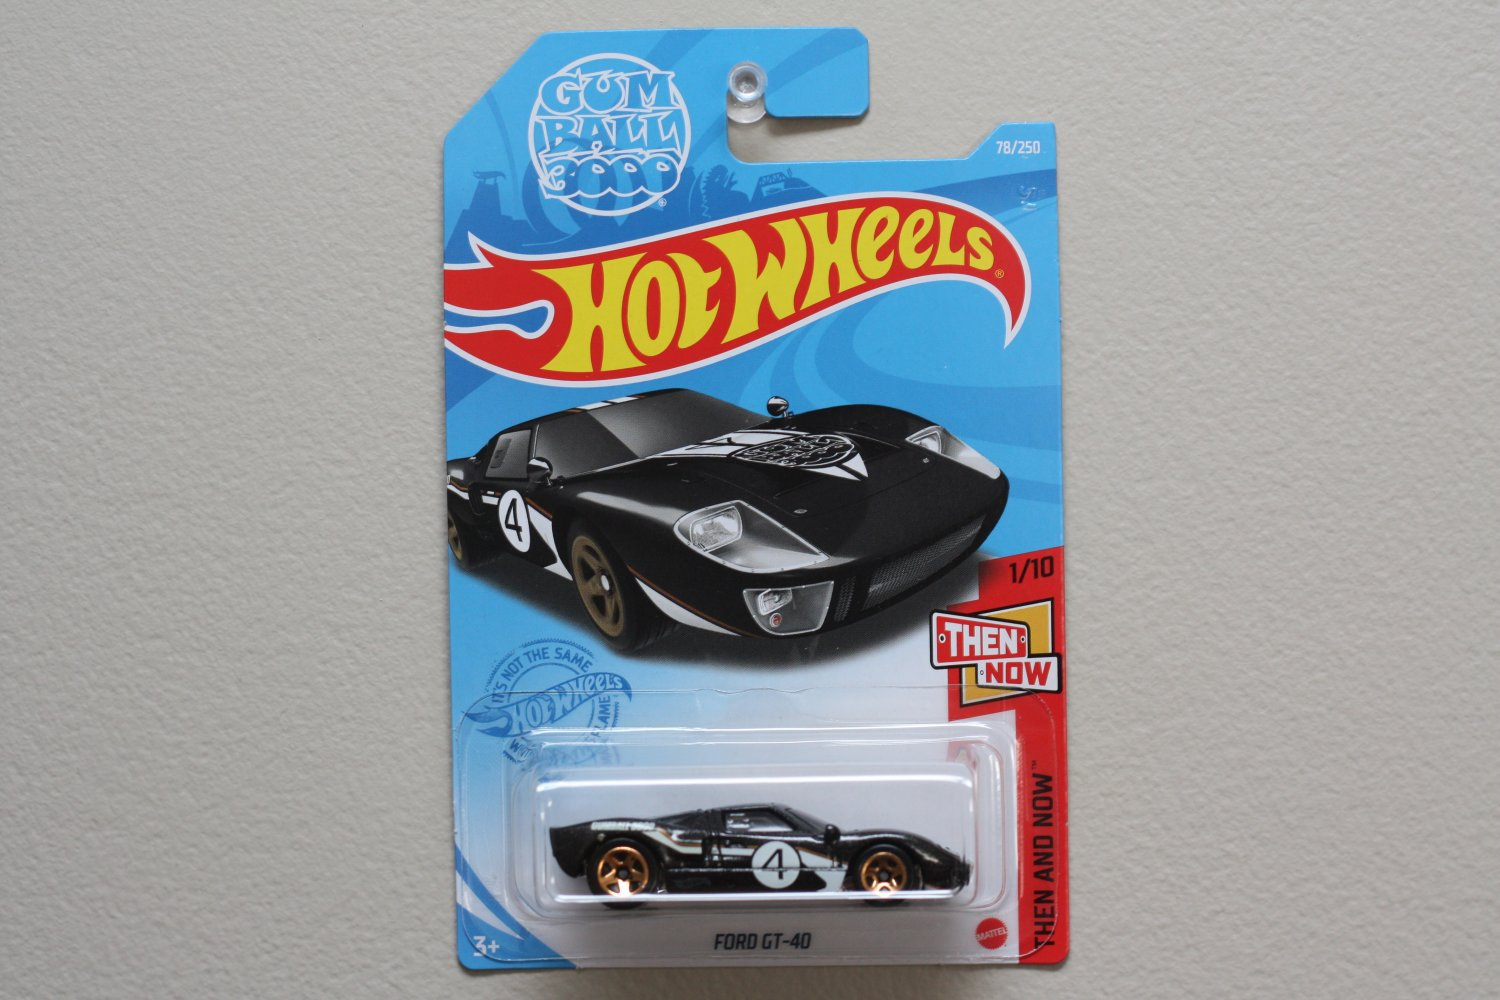 Hot Wheels 2021 Then And Now Ford GT-40 (black) (Gum Ball 3000) (SEE CONDITION)